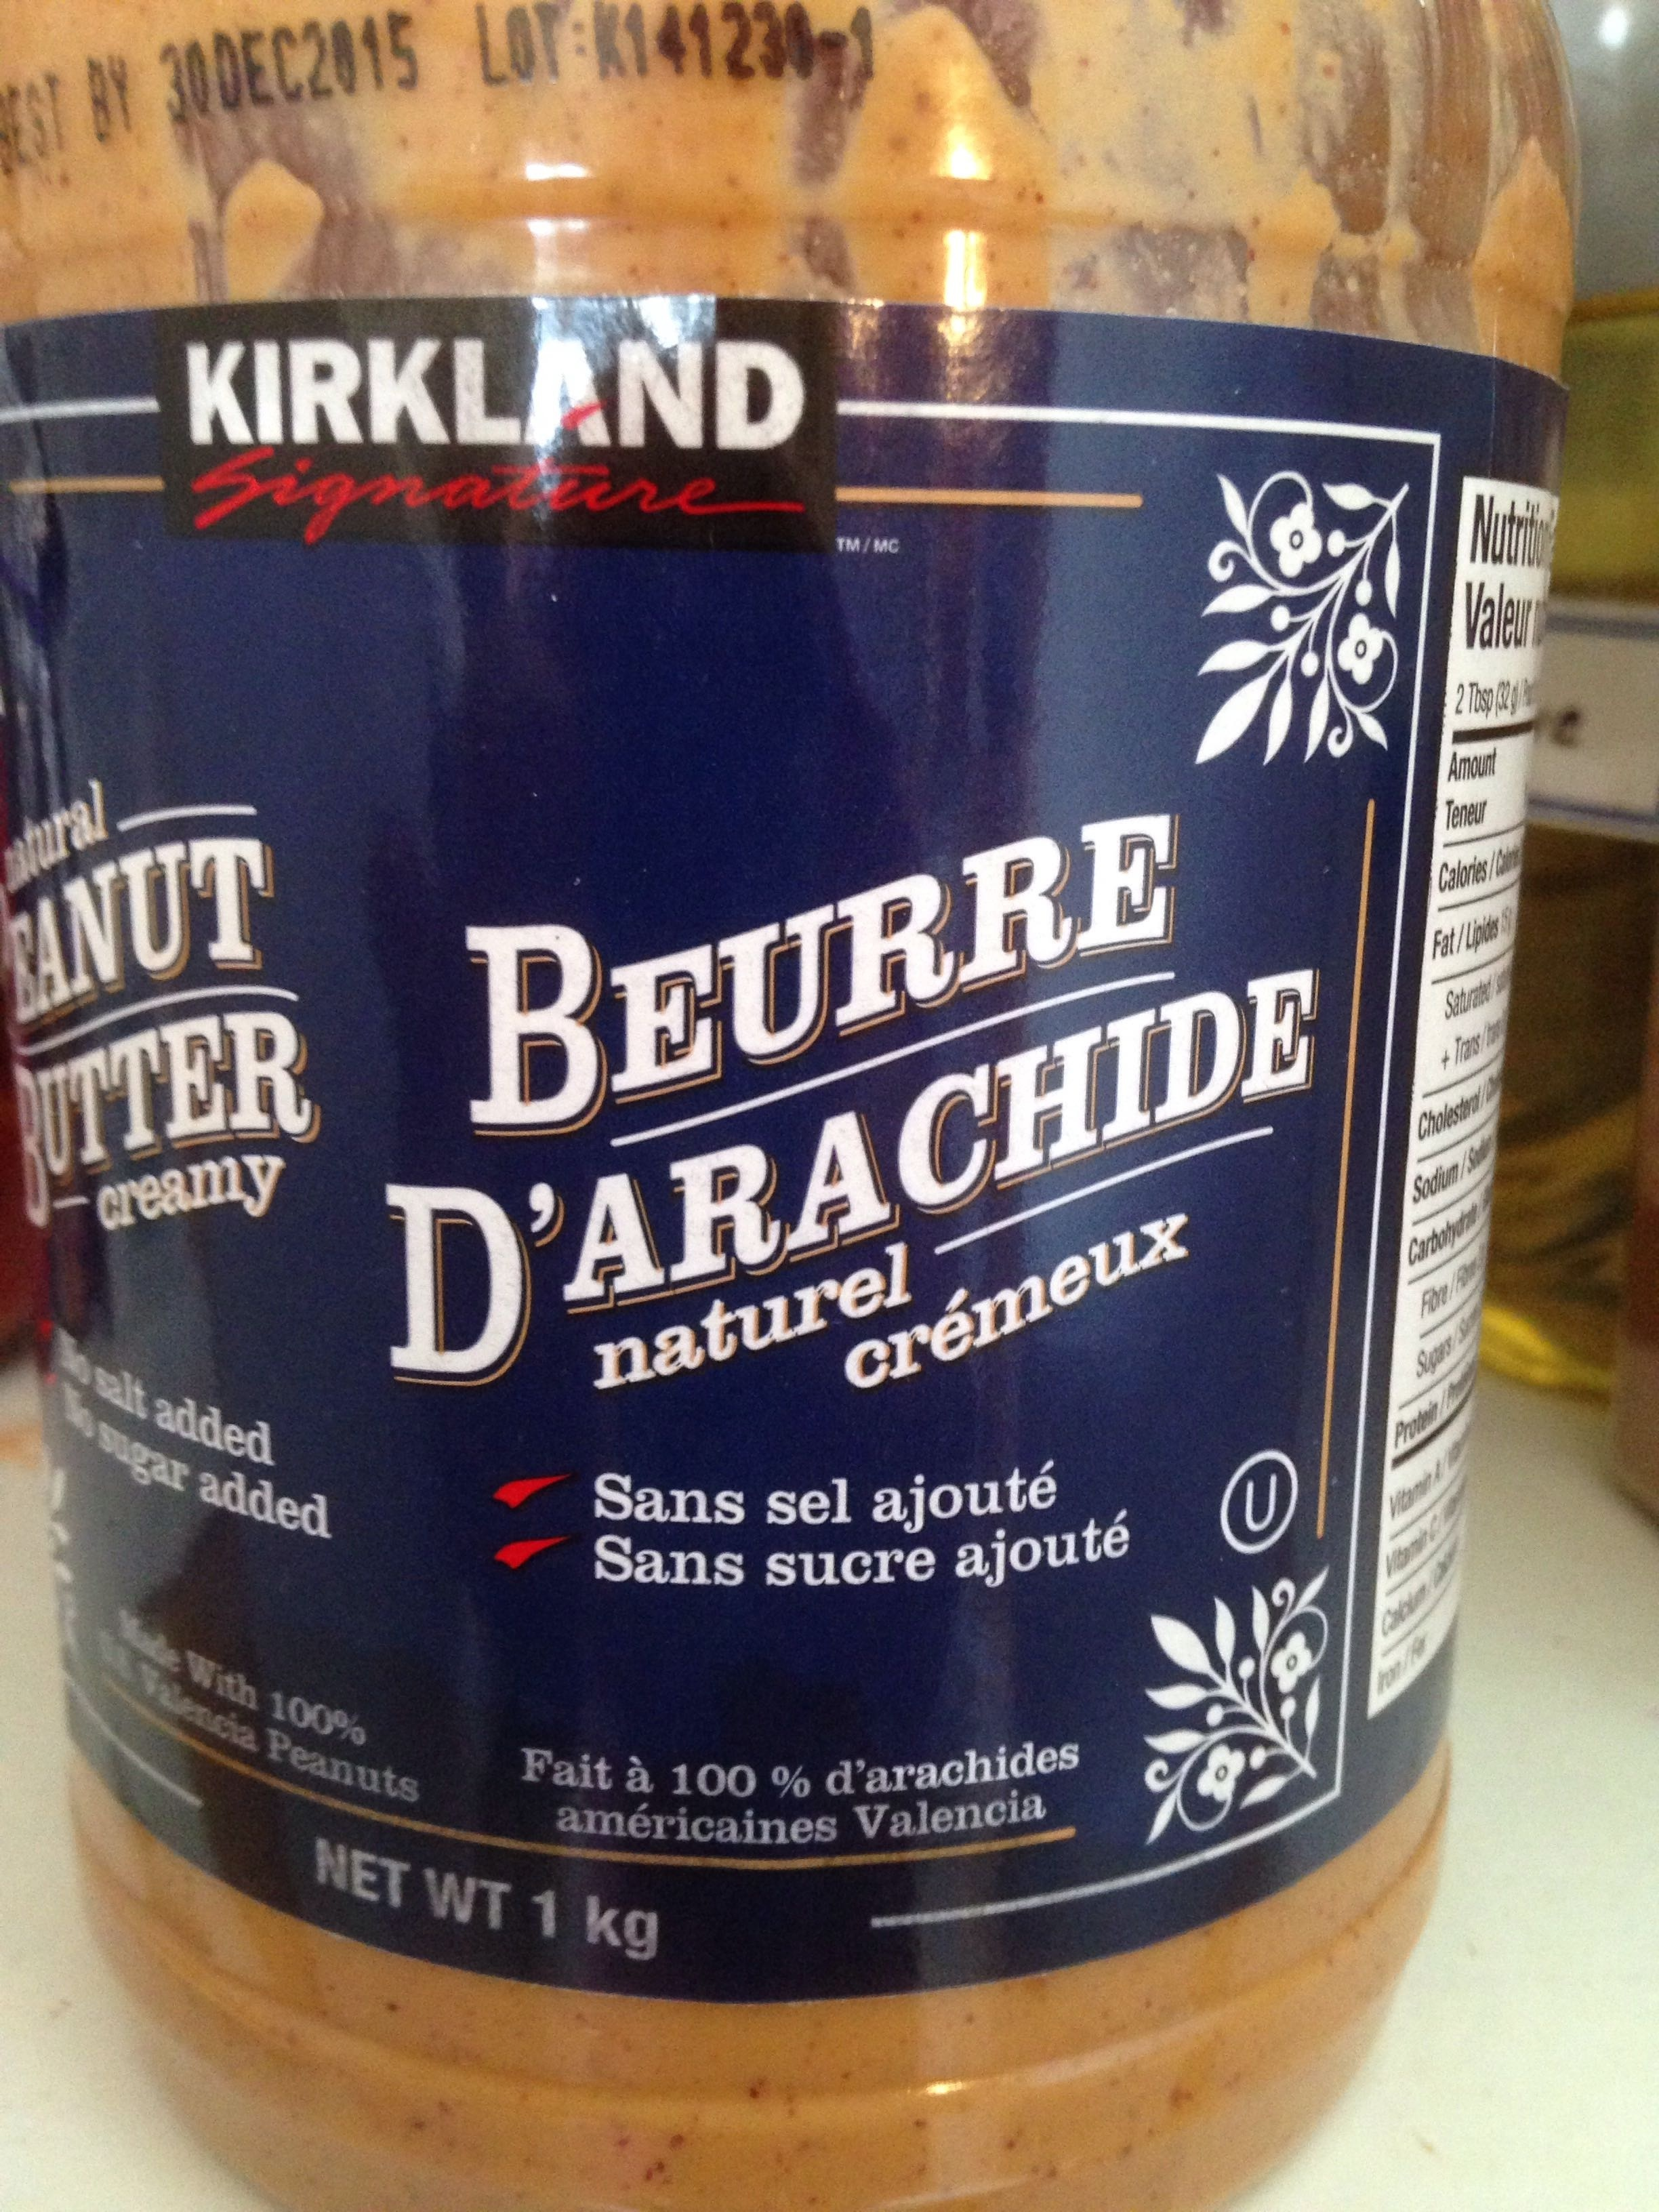 Beurre d'arachide - Product